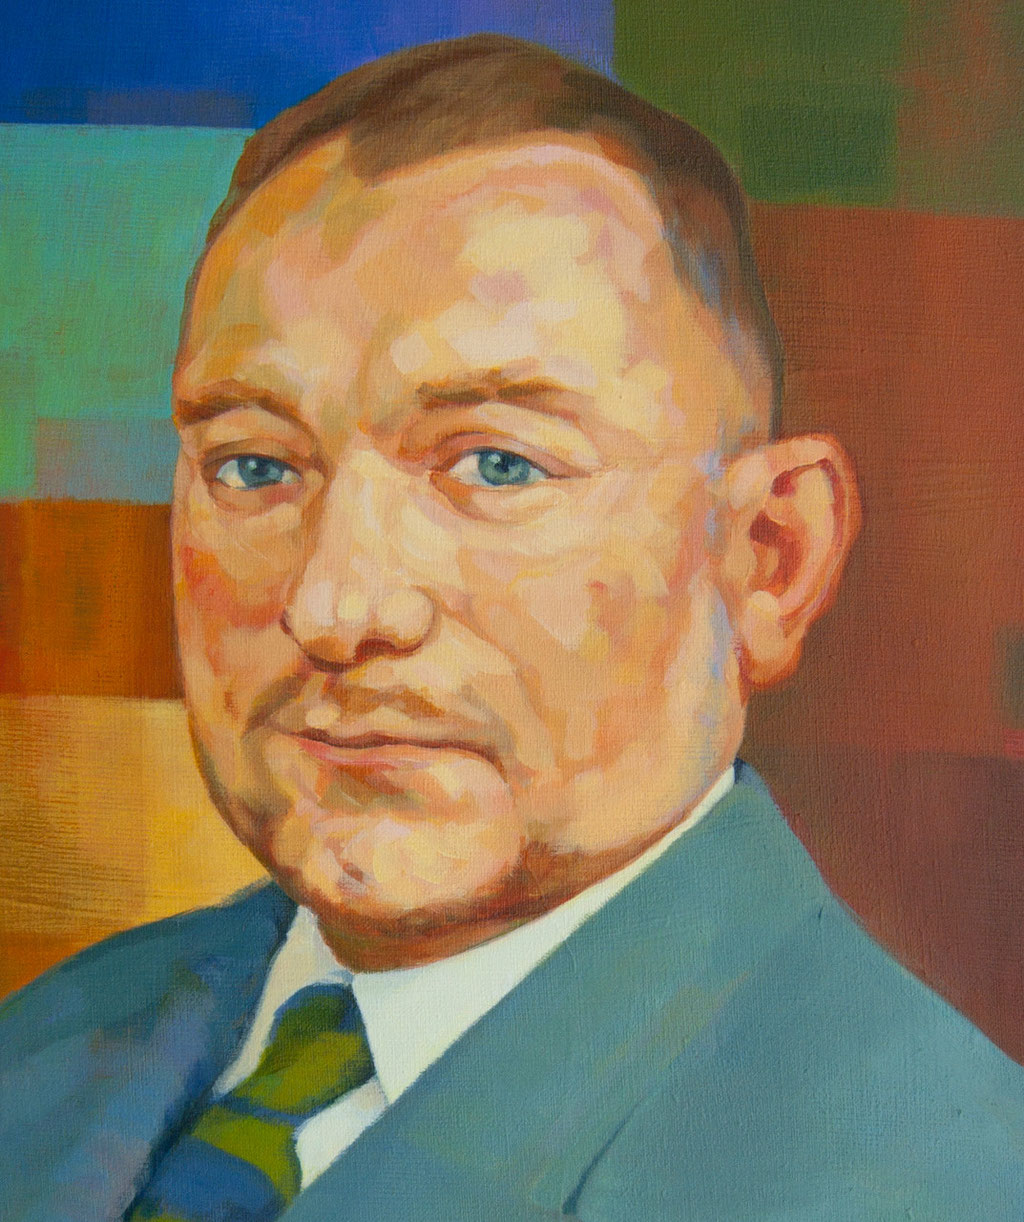 Portrait of Michel Robin. (commission). Acrylic on canvas.